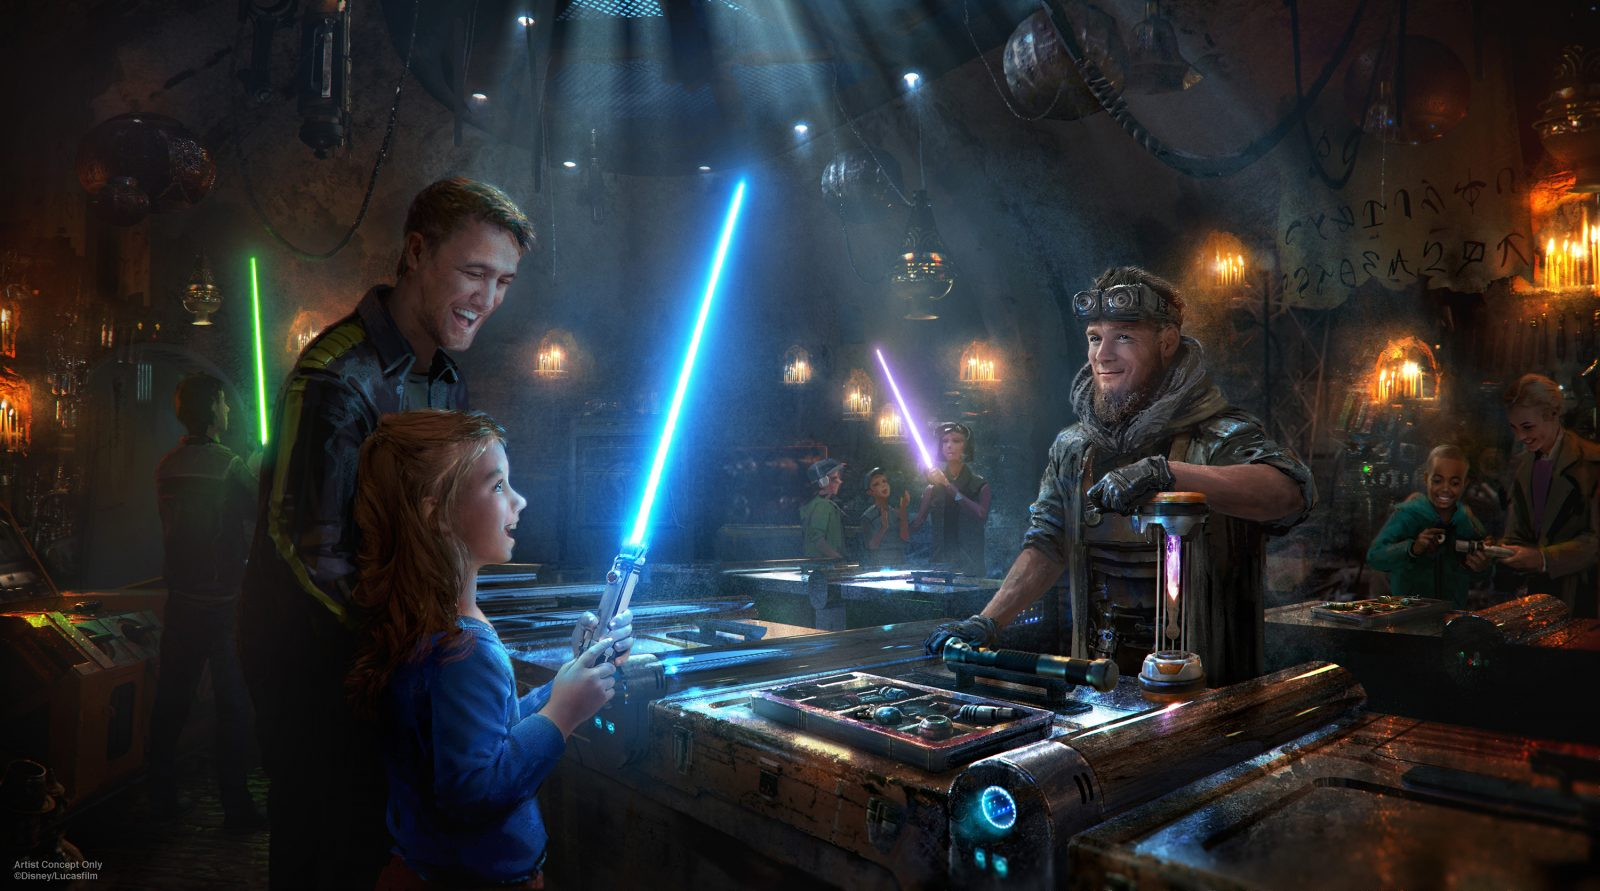 Become a Jedi fighter at Disney's Galaxy's Edge.